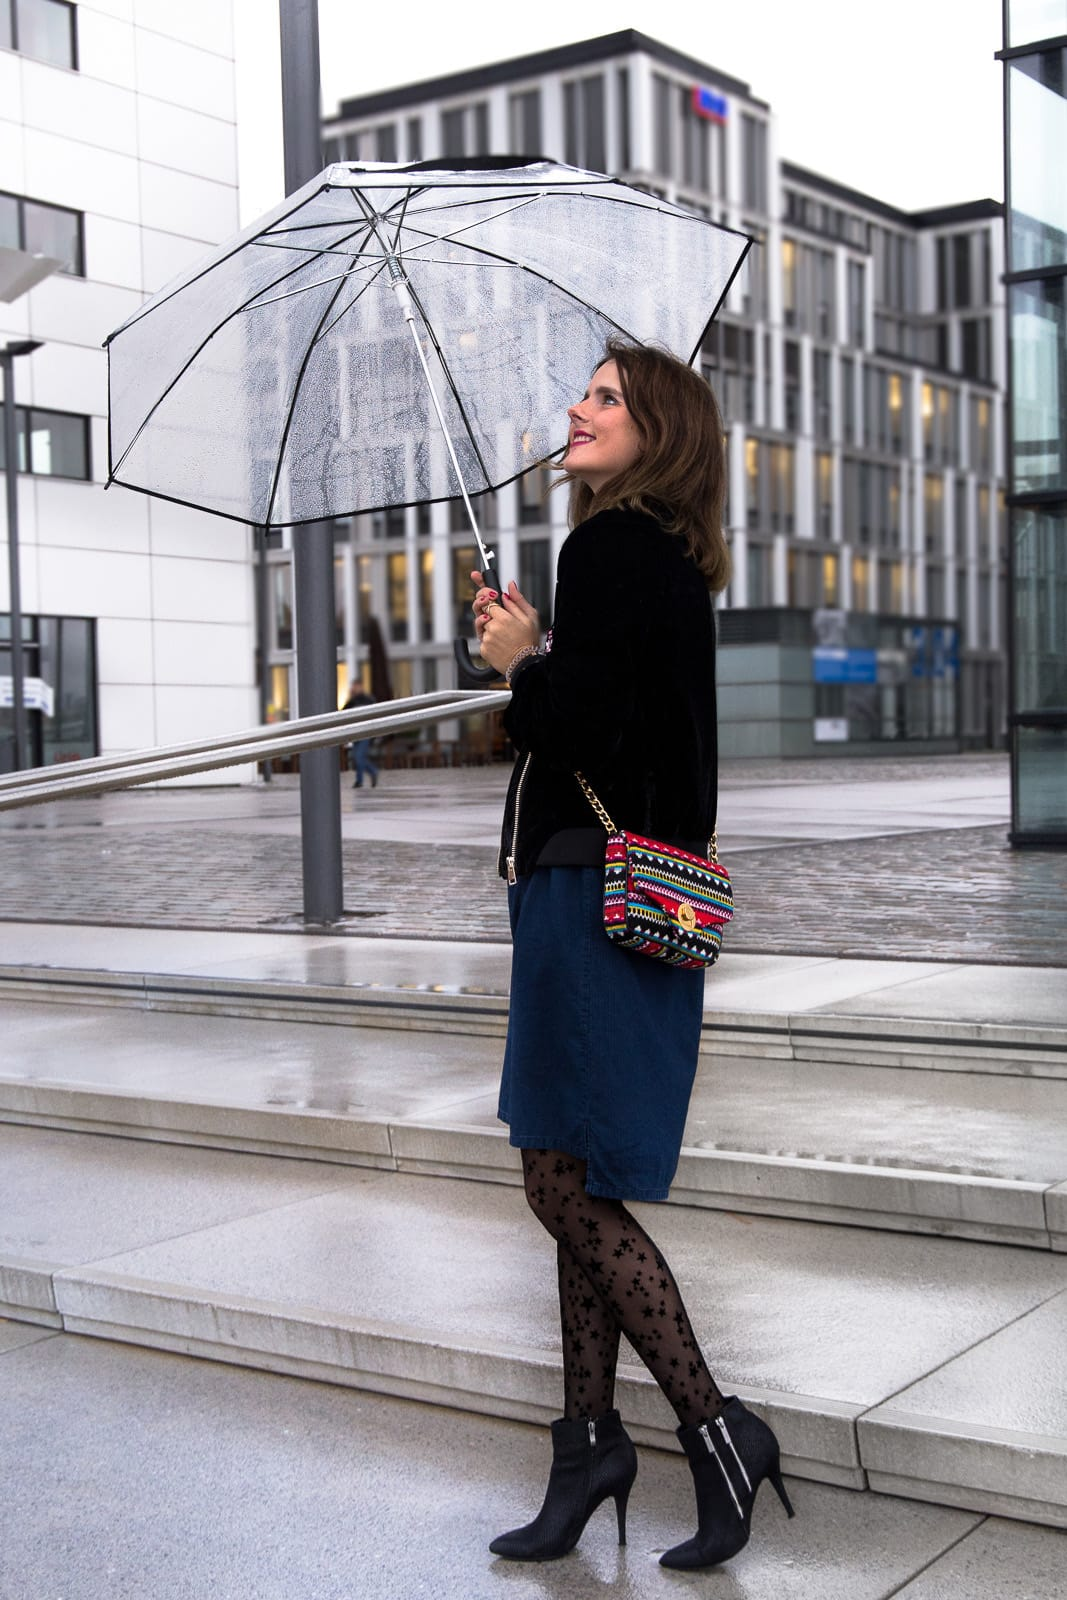 Outfit: Samt Bomberjacke mit Patches & Jeanskleid